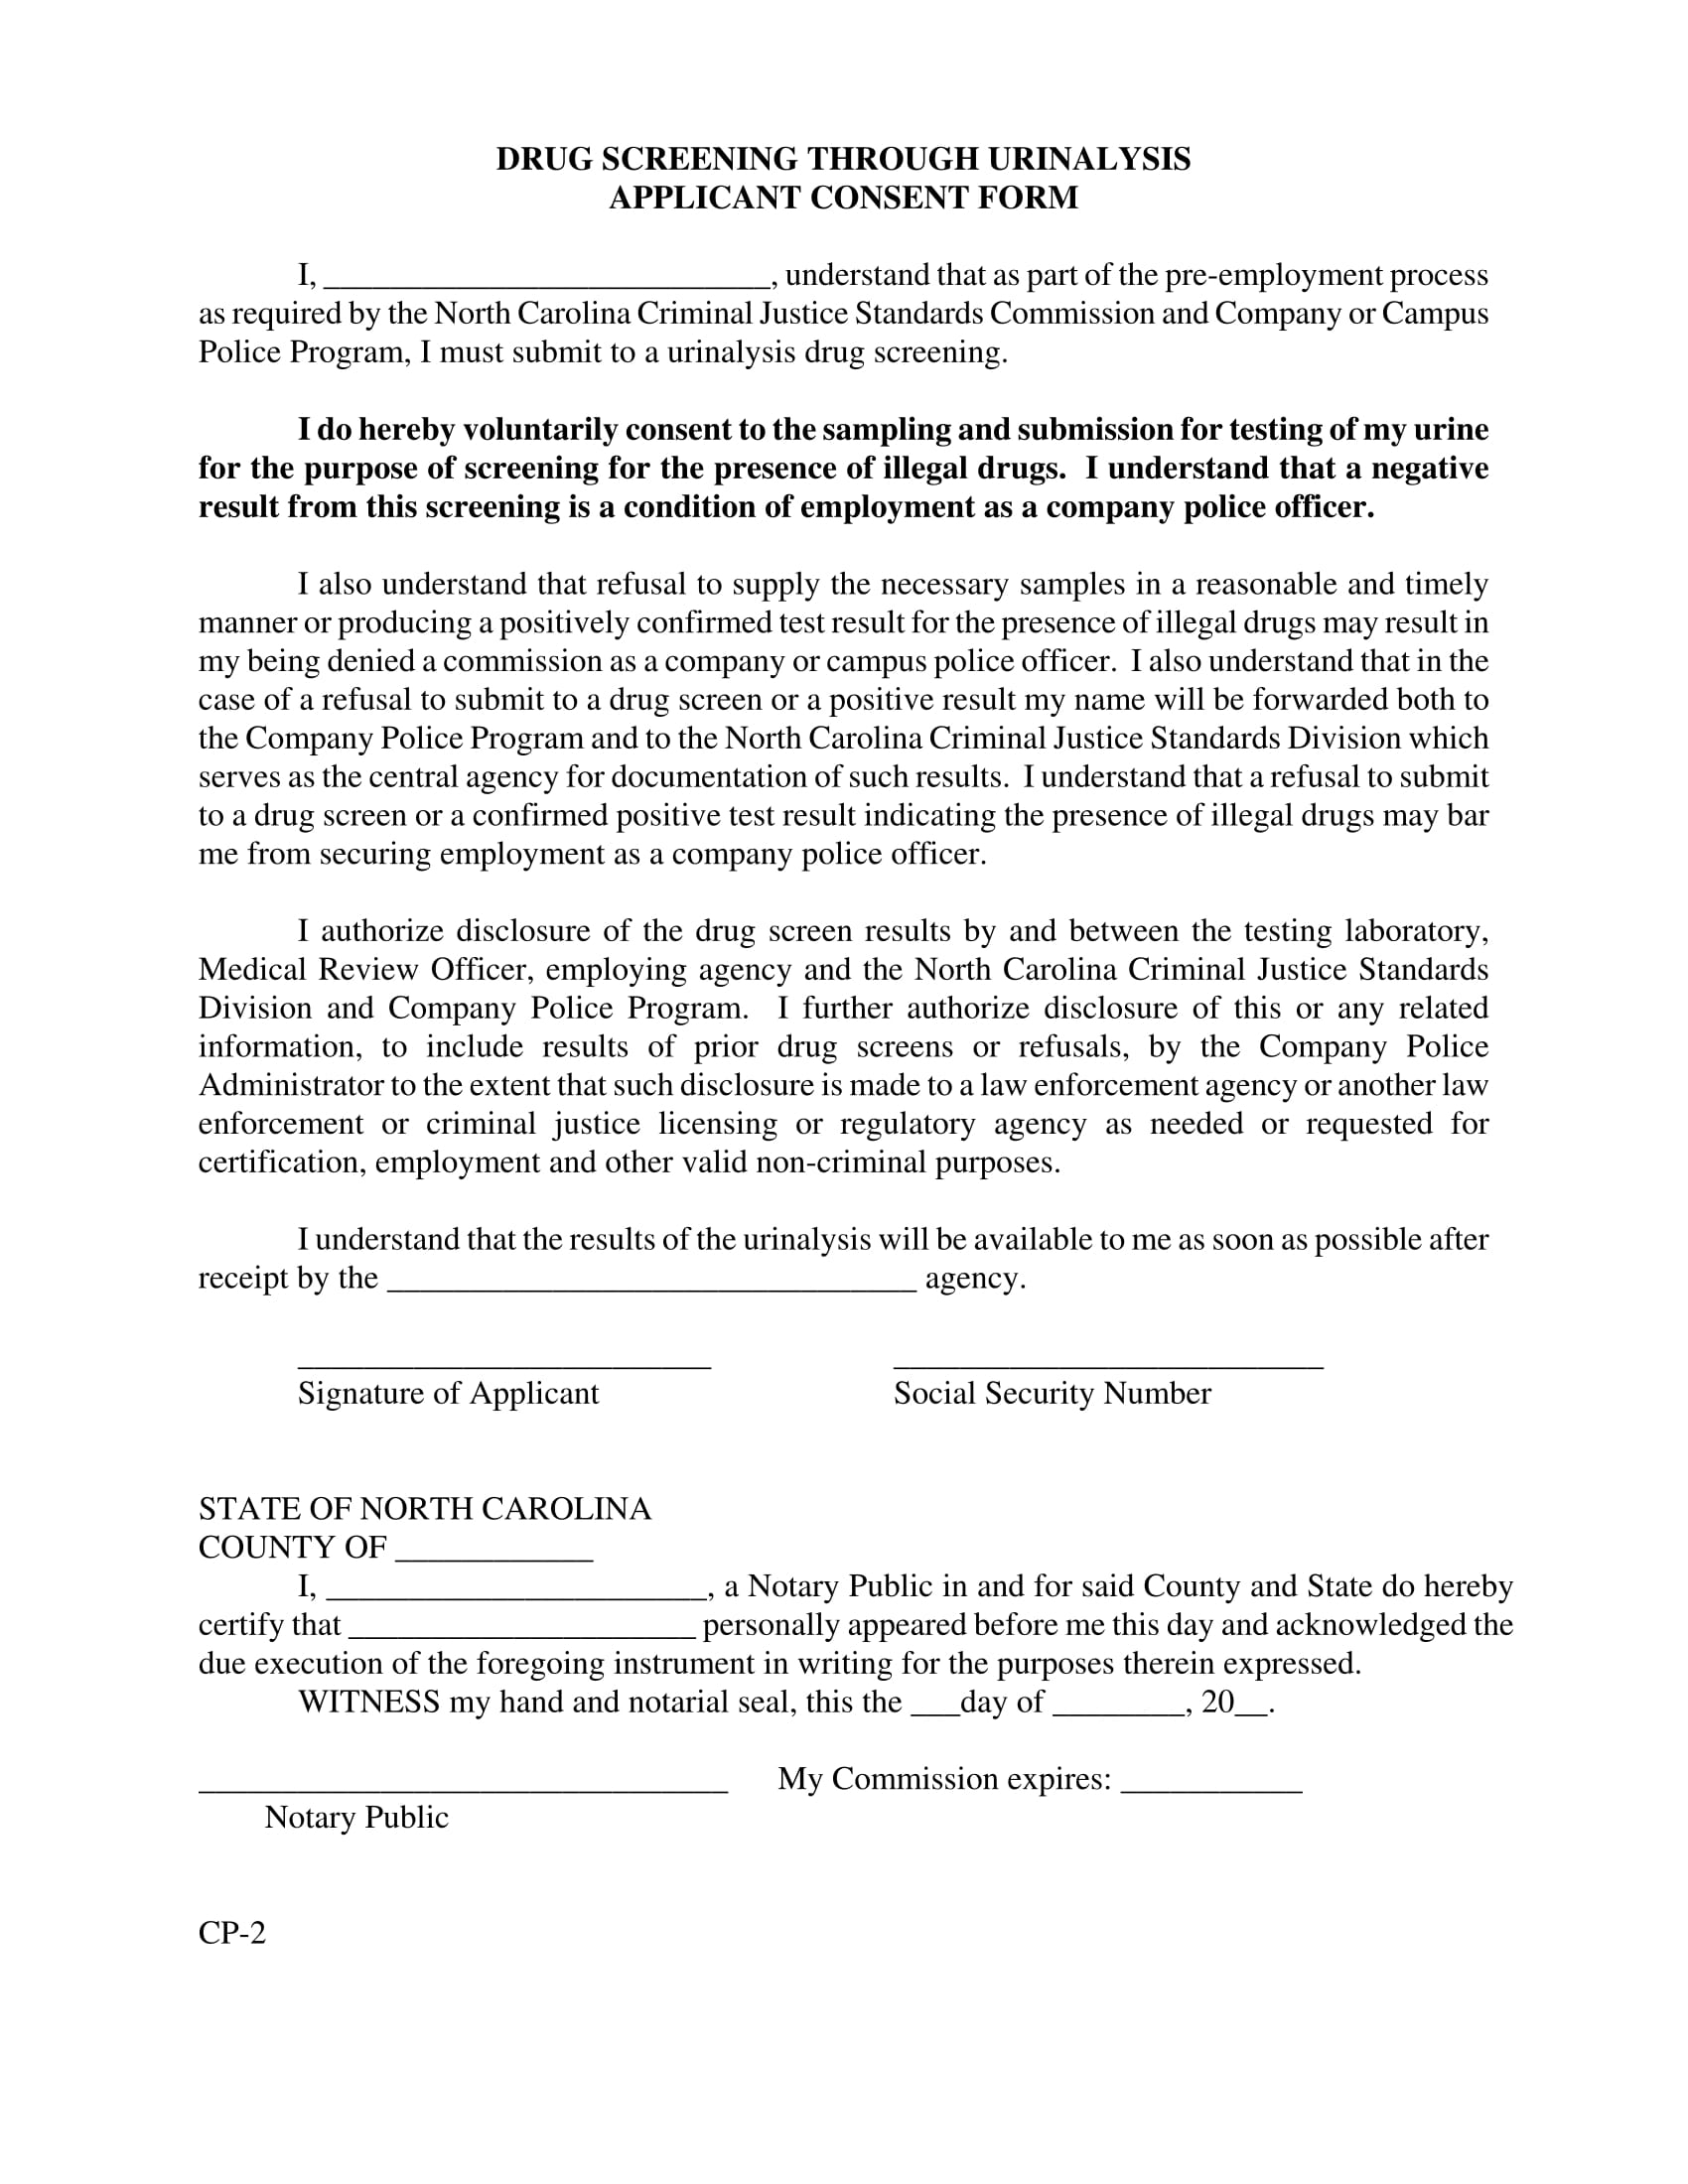 applicant drug screening consent form 1